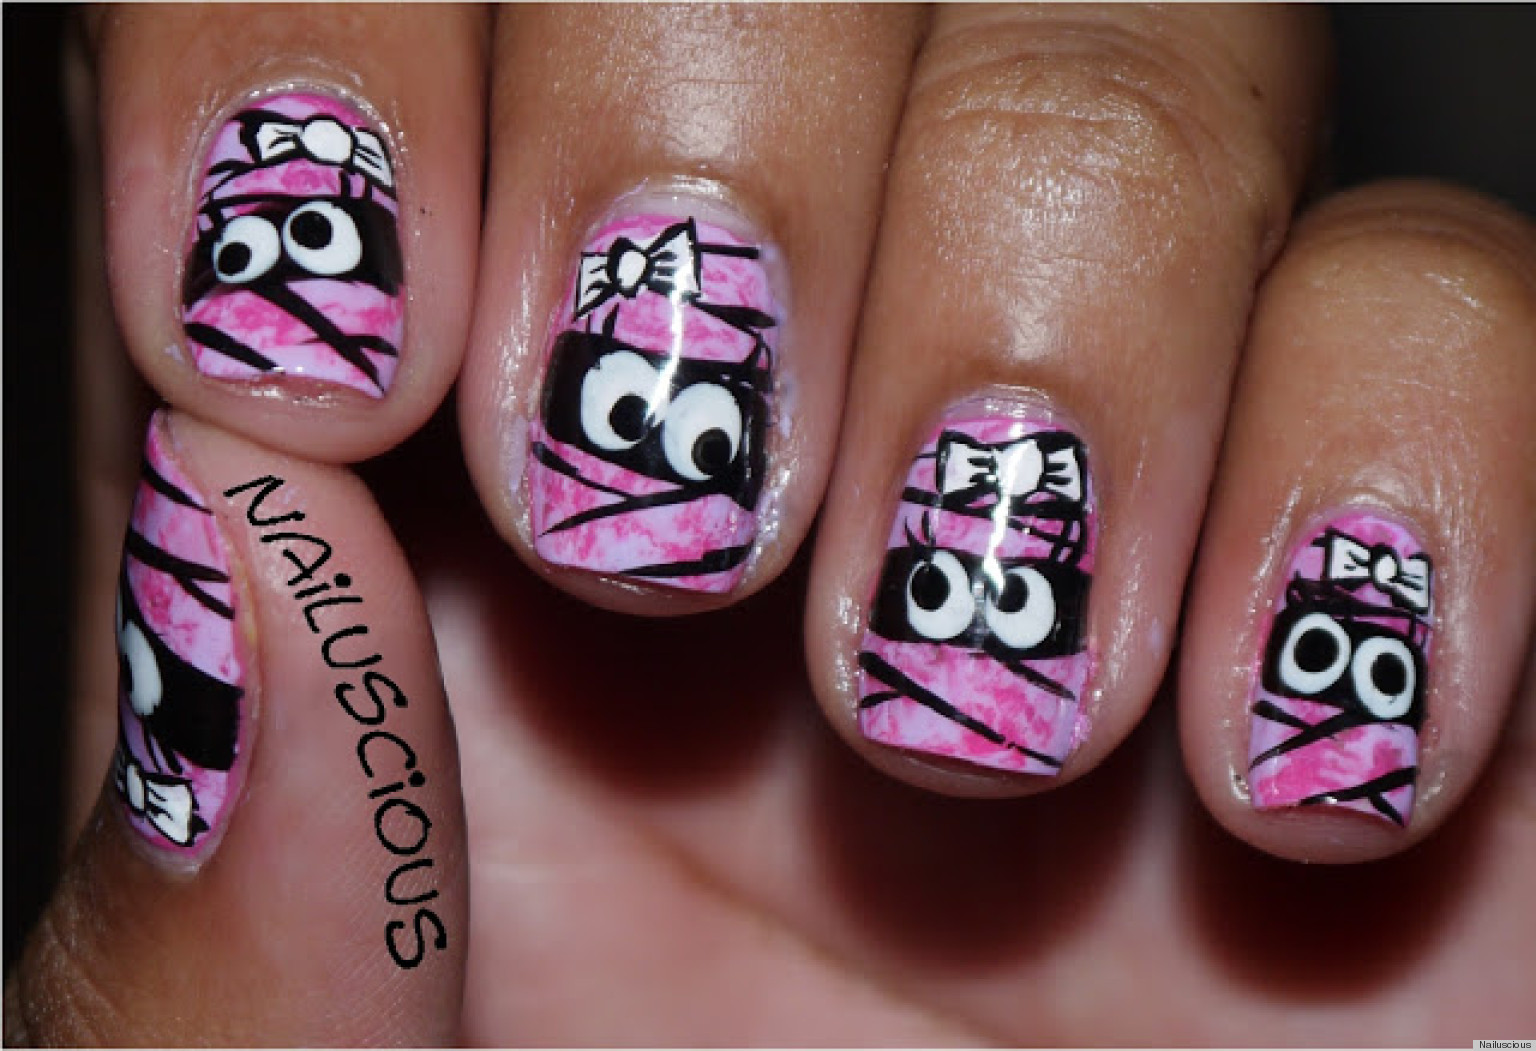 DIY Nail Art: Halloween-Inspired Mummy Manicure (PHOTOS)